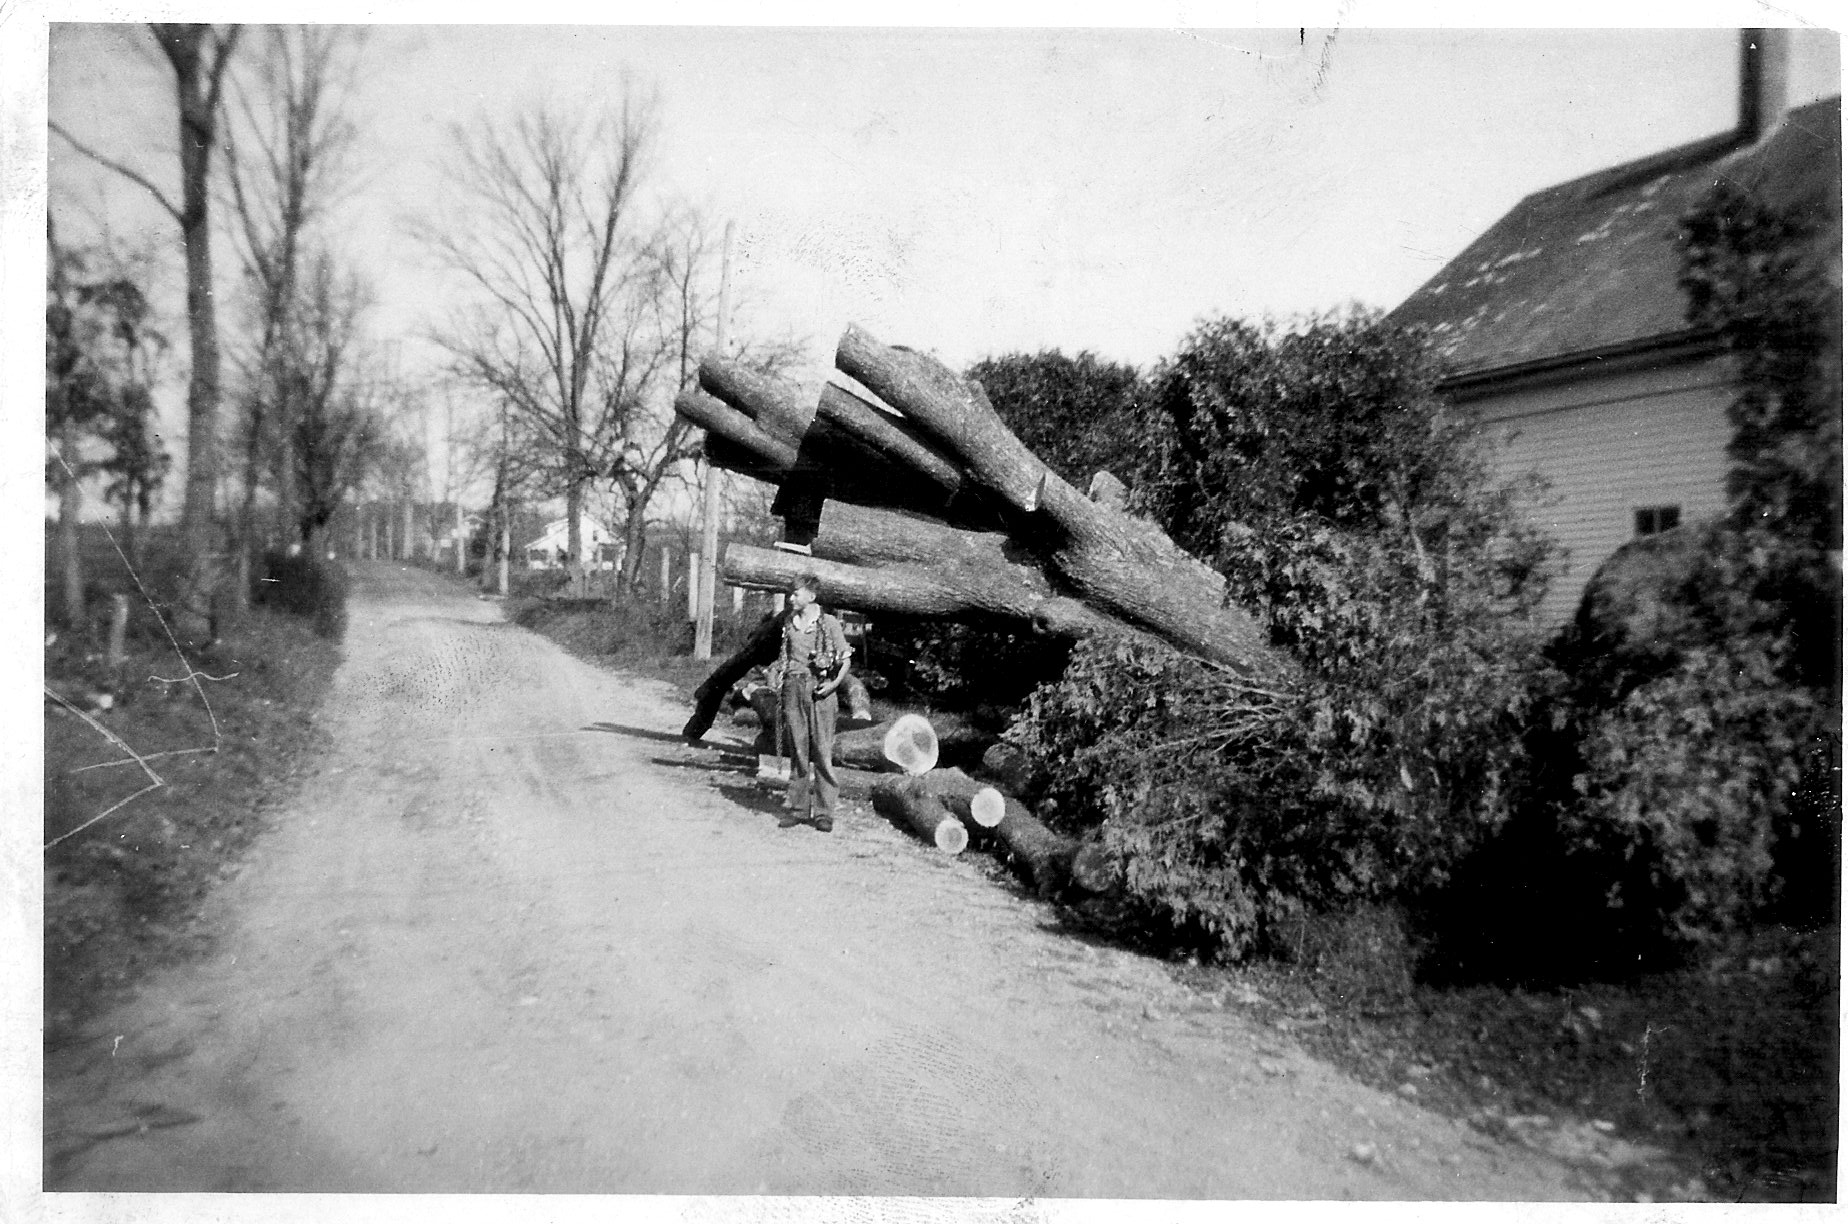 Earl Mead farm off Rt 197 Quinebaug CT 1938 Hurricane, psbly Earl Meade Jr